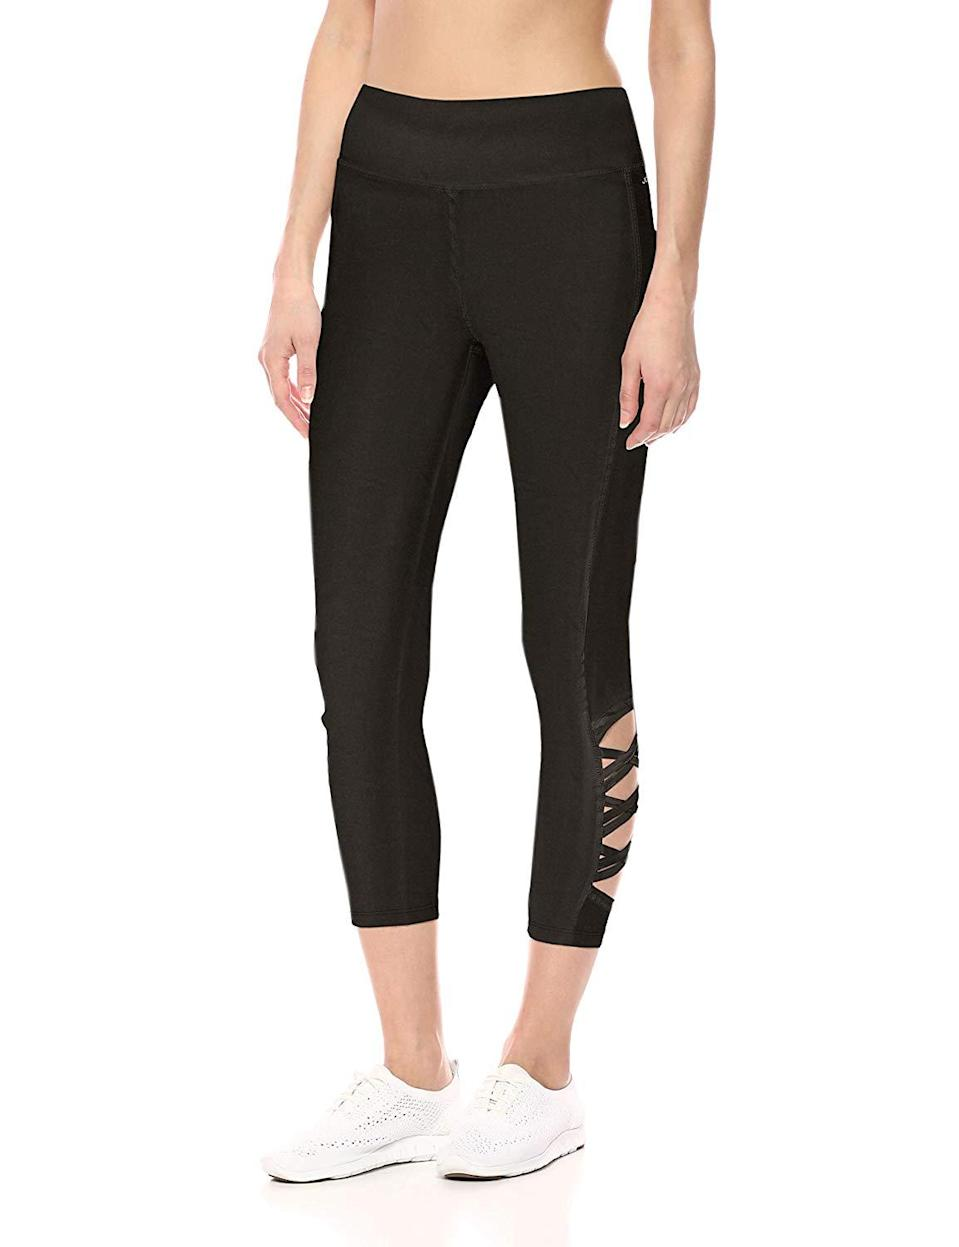 "<h3><a href=""https://www.amazon.com/Jockey-Womens-Weave-Capri-combo-54900/dp/B07HSL2TGP"" rel=""nofollow noopener"" target=""_blank"" data-ylk=""slk:Weave Capri"" class=""link rapid-noclick-resp"">Weave Capri</a> </h3><br><br>Not enough reviews<br><br><strong>Jockey</strong> Weave Capri, $, available at <a href=""https://www.amazon.com/Jockey-Womens-Weave-Capri-combo-54900/dp/B07HSL2TGP?th=1&psc=1"" rel=""nofollow noopener"" target=""_blank"" data-ylk=""slk:Amazon"" class=""link rapid-noclick-resp"">Amazon</a>"